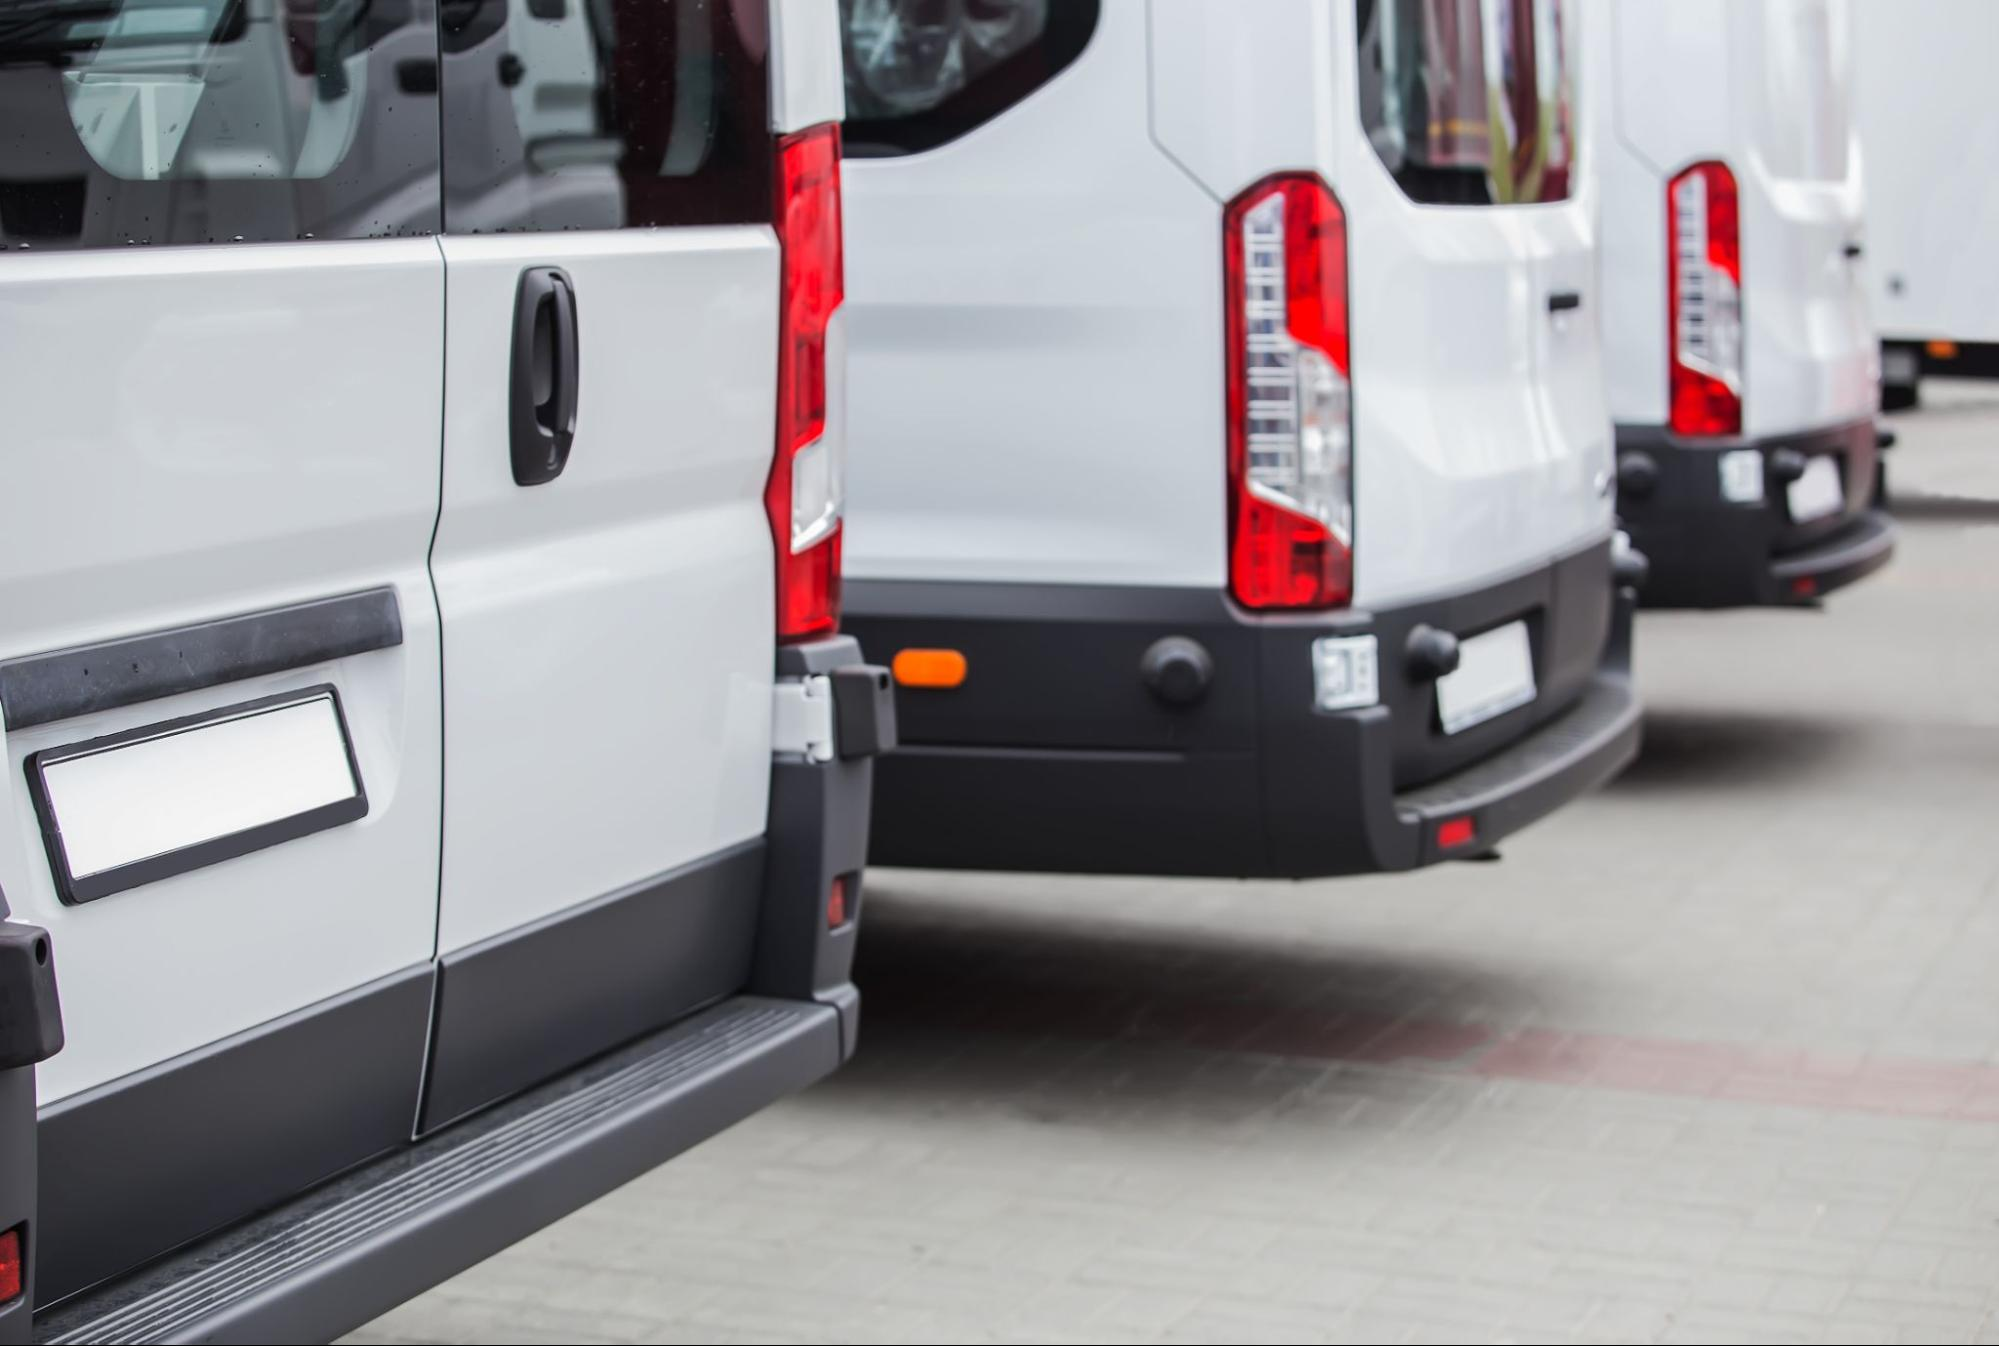 The back part of a parked fleet of commercial vehicles